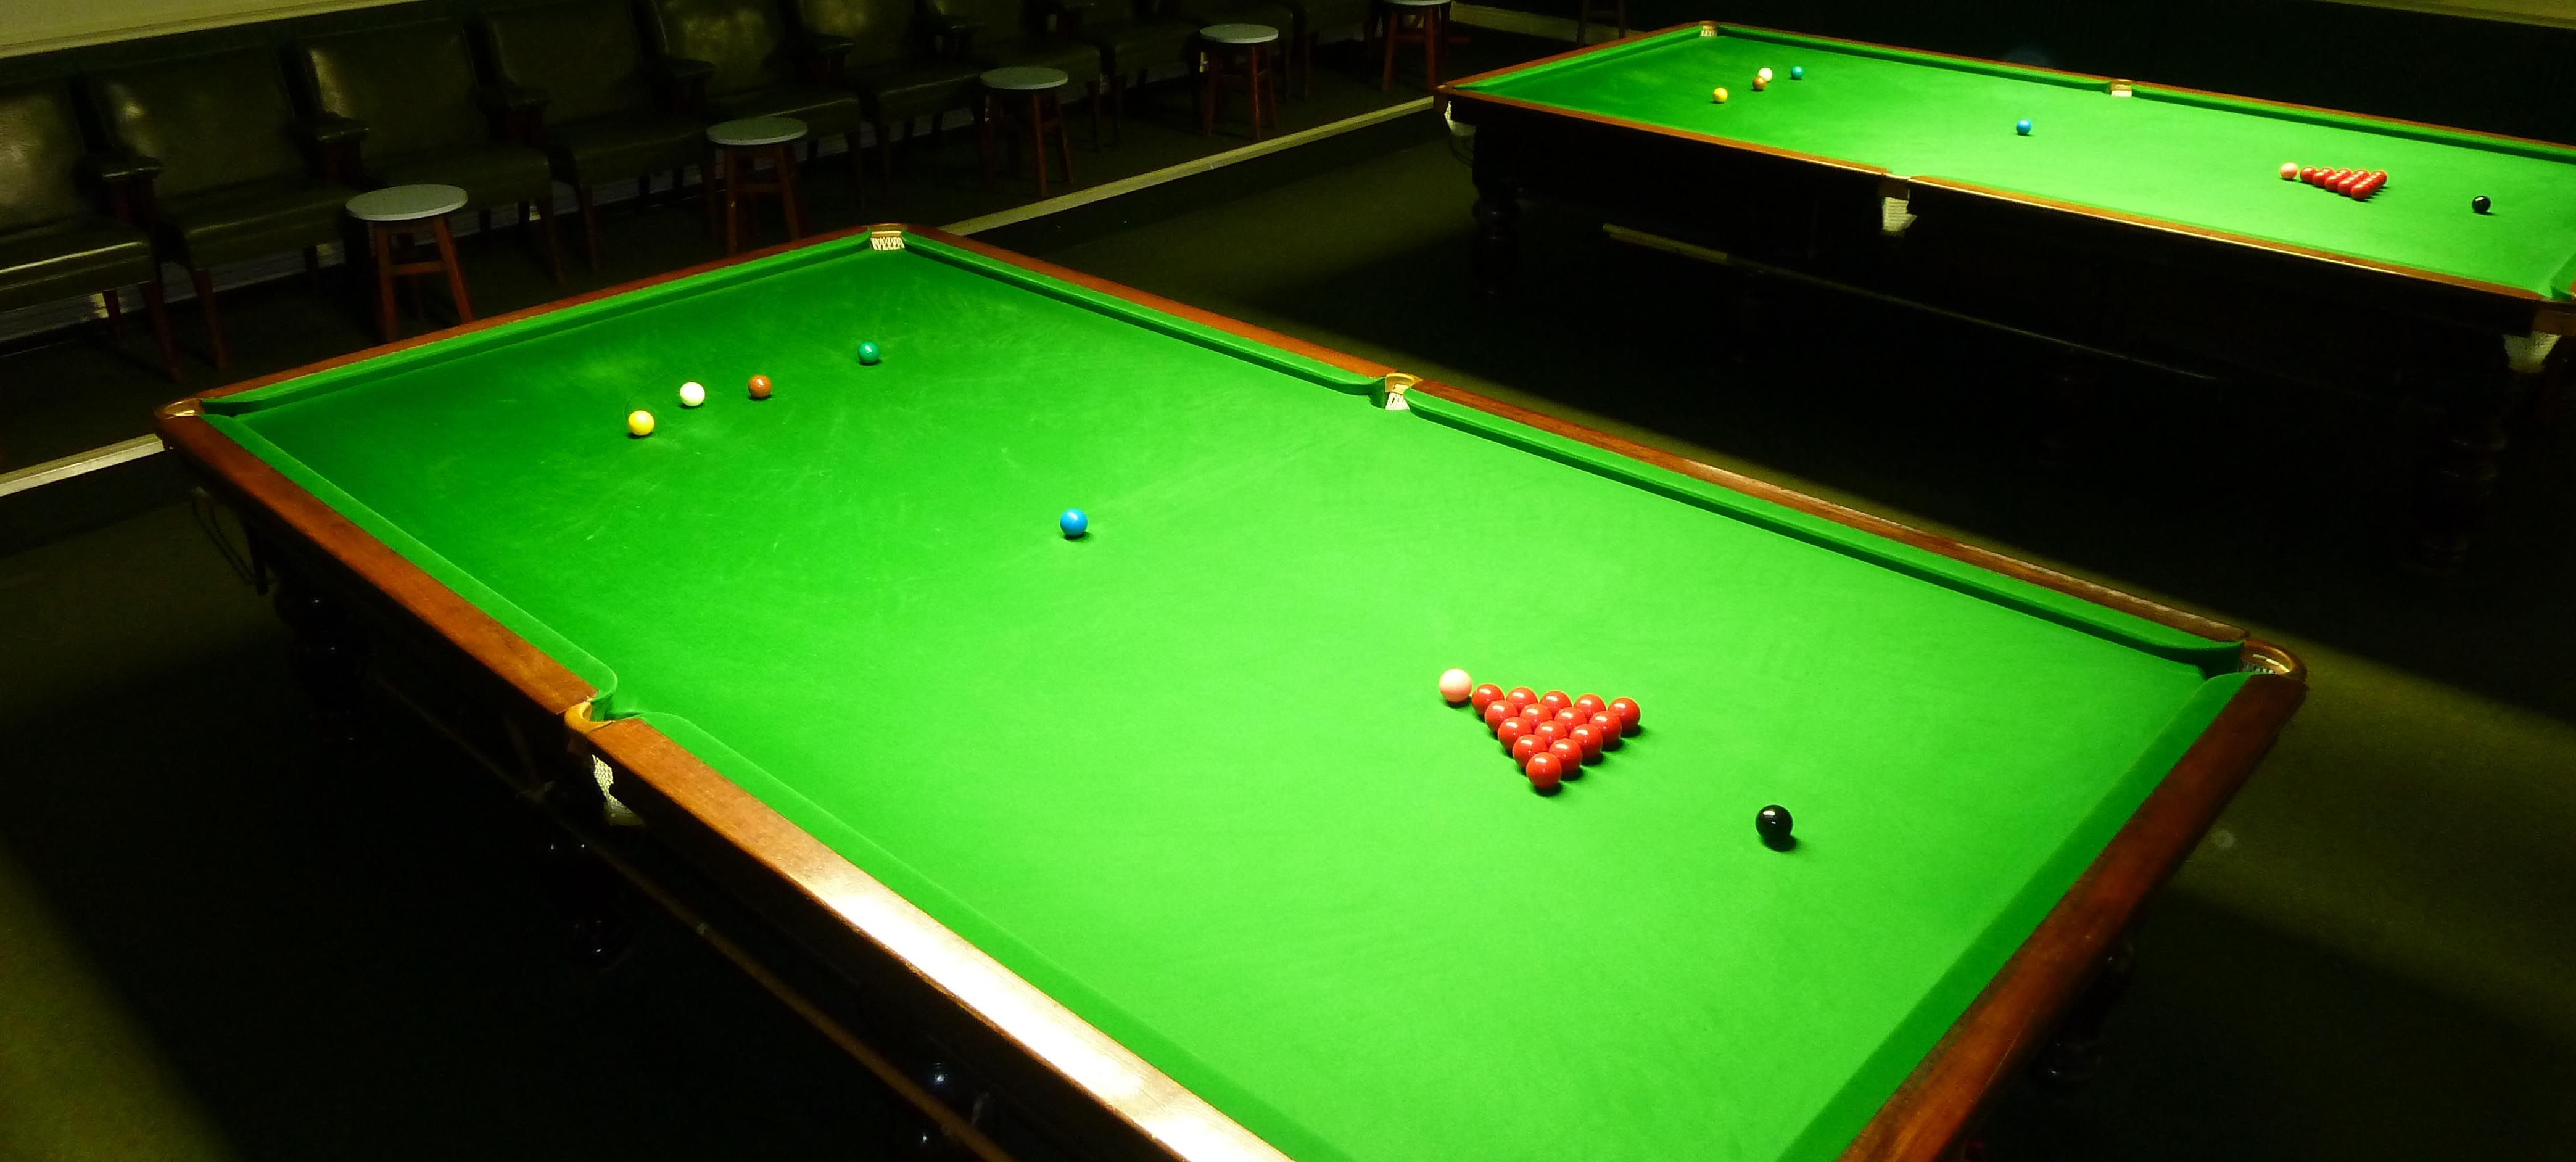 4176x1884 - Snooker Wallpapers 2